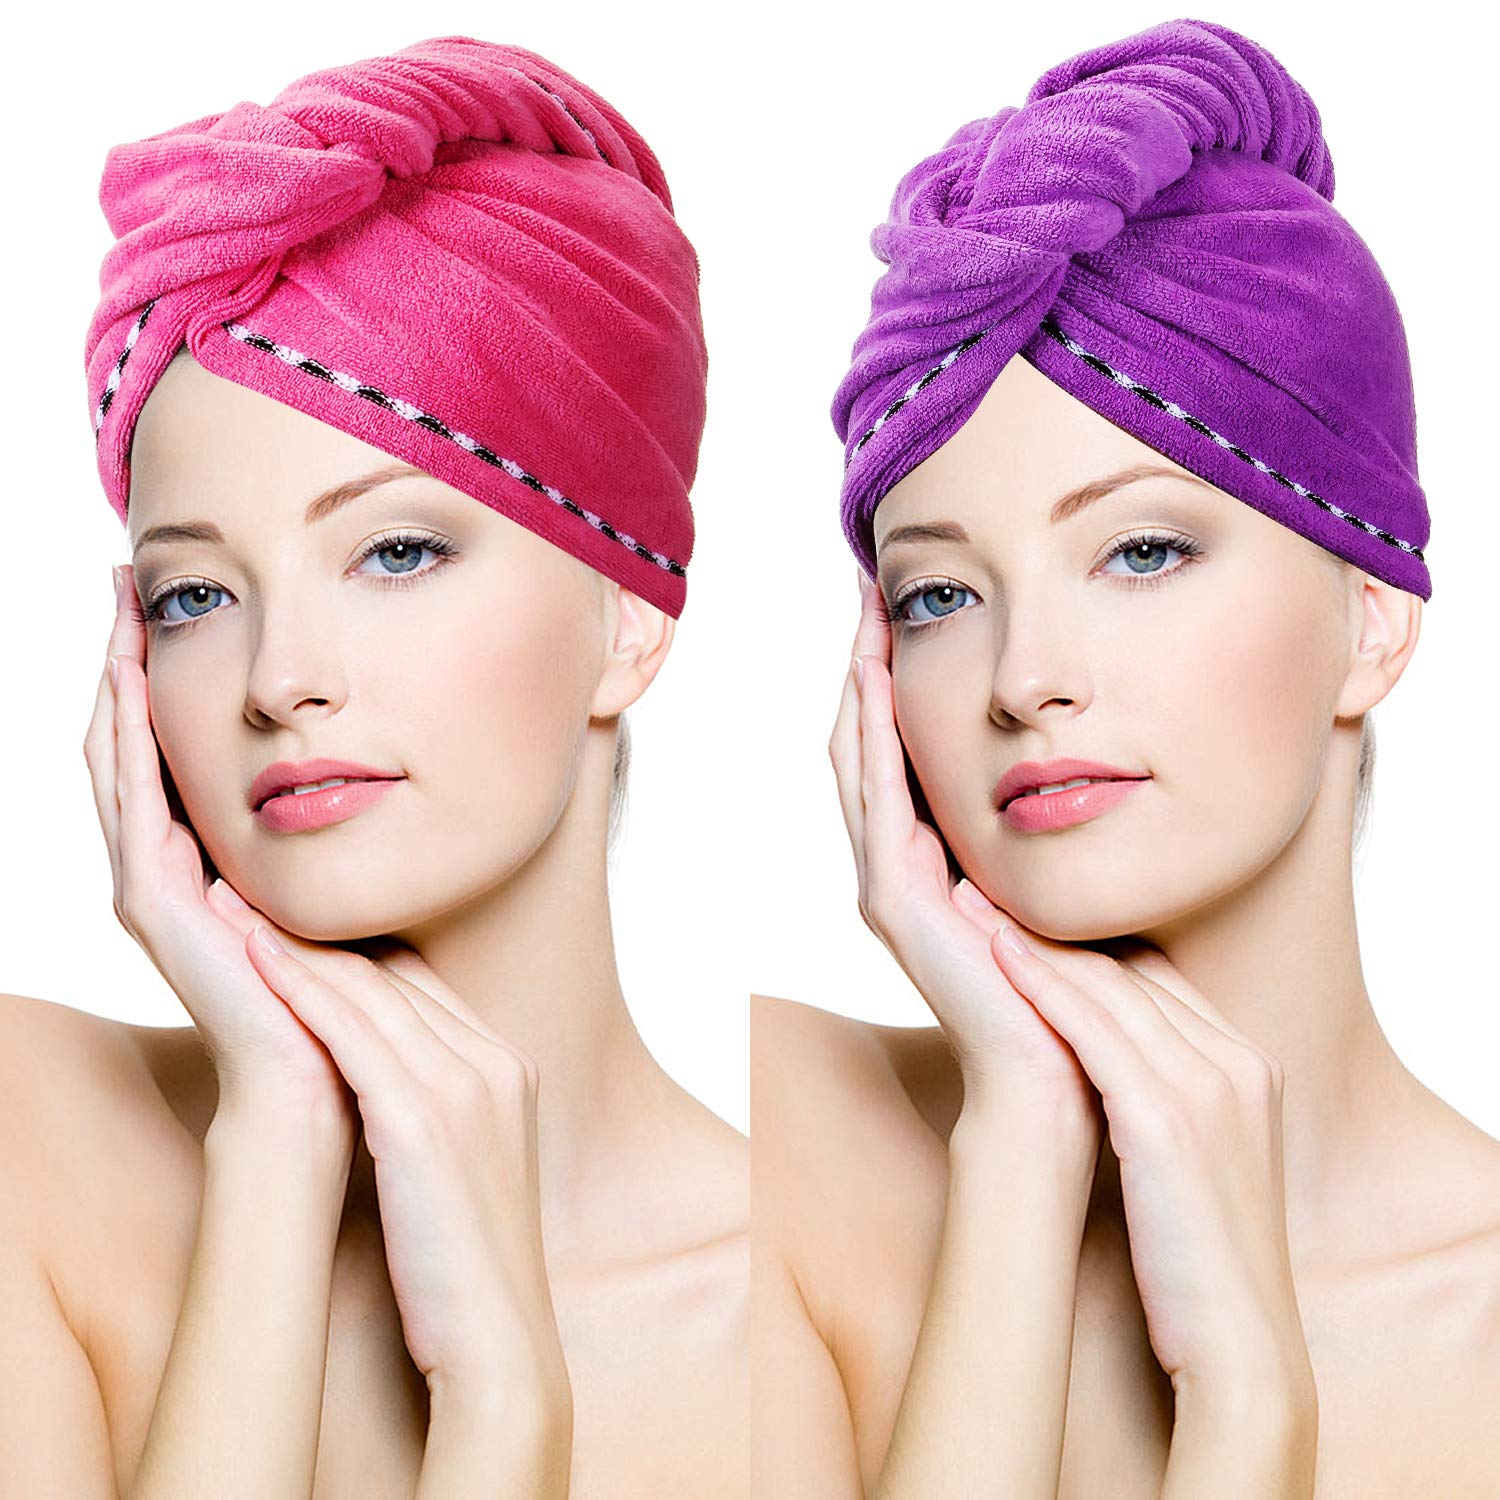 Microfiber Hair Towel Quick Magic Hair Dry Hat, Turban Twist Hair Towel Wrap Head Towel with Button, Quick Dry Super Absorbent for Long & Curly Hair, Anti-Frizz [2 Pack] by YAPASPT